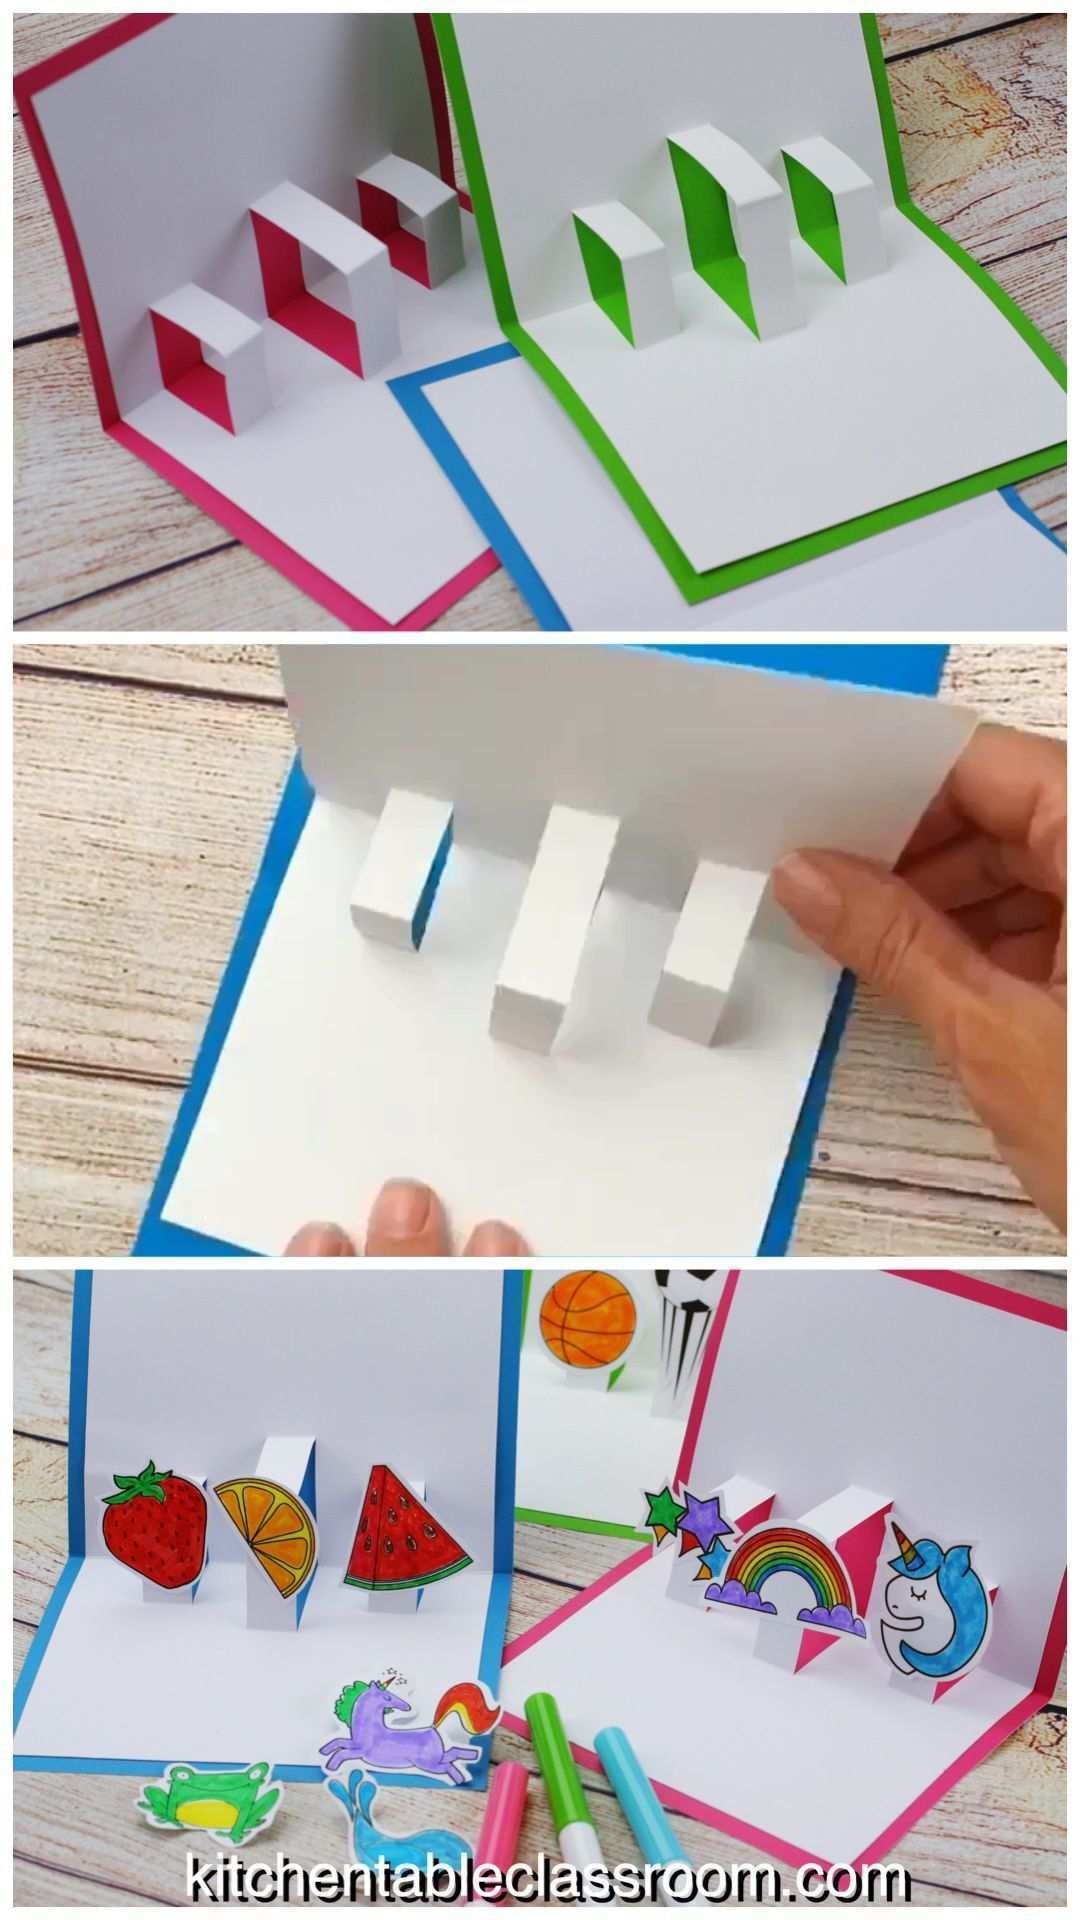 Build Your Own 3d Board With Free Pop Up Board Templates The Kitchen Table Classroom Pop Up Karten Vorlagen Pop Up Karte Basteln Karten Basteln